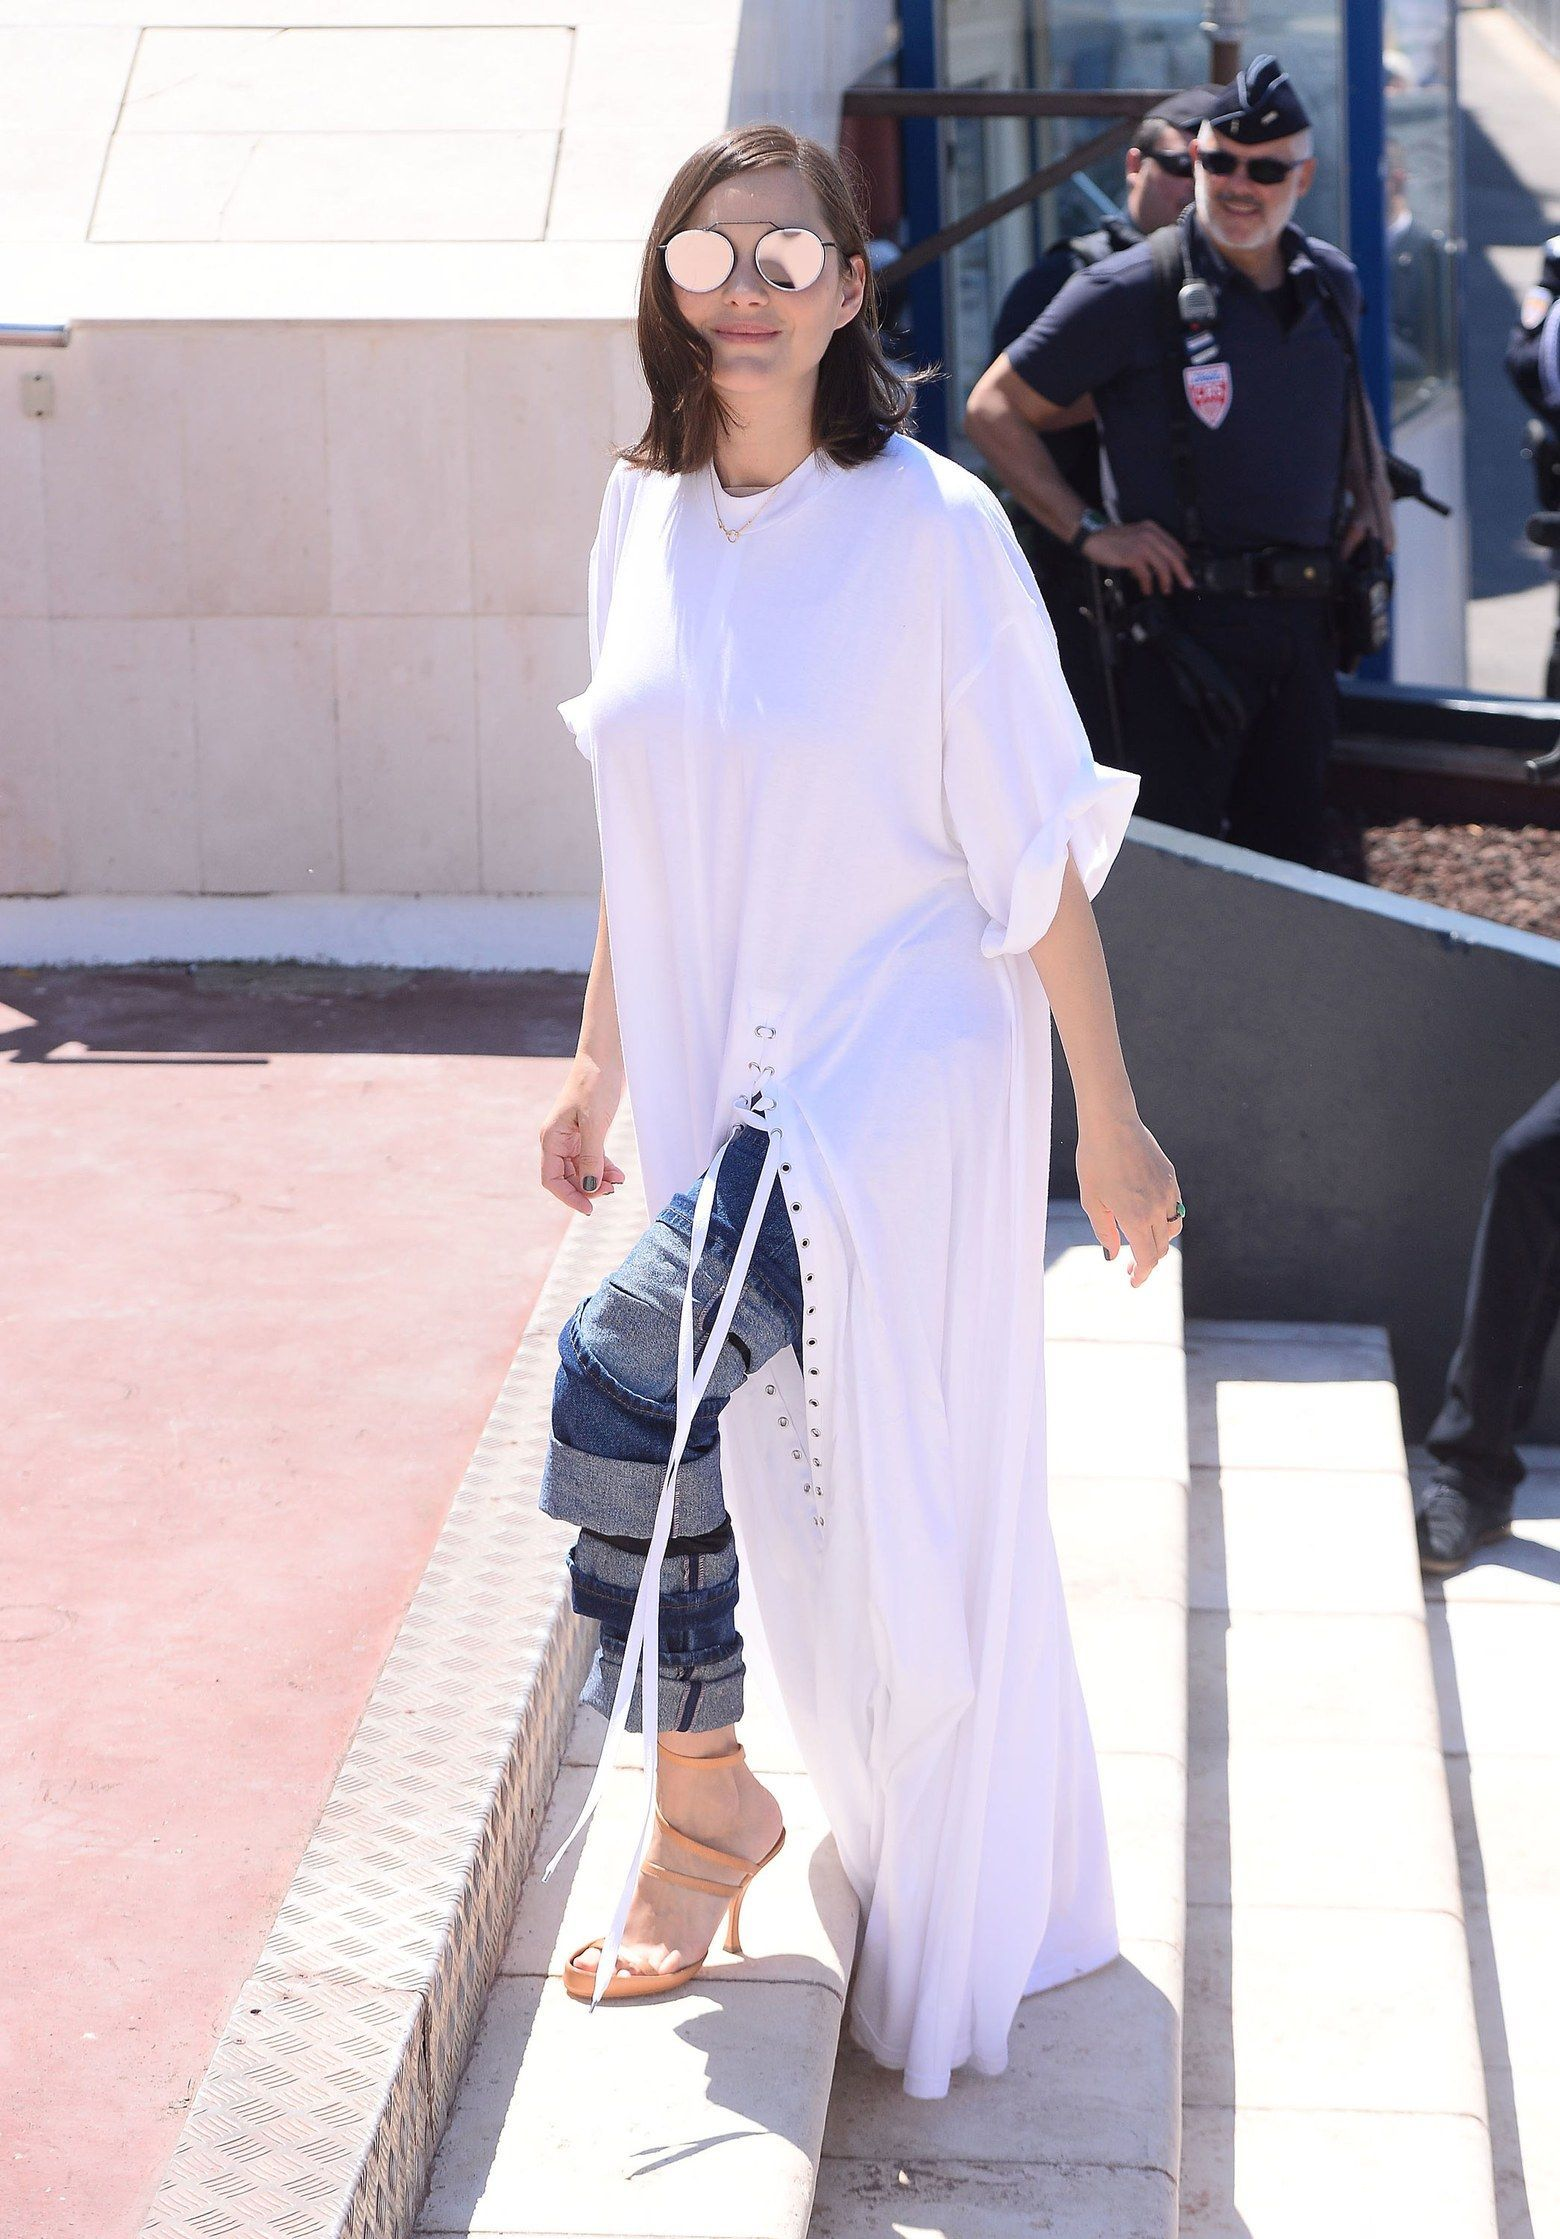 These Celebrities Are Showing The Best Maternity Styles